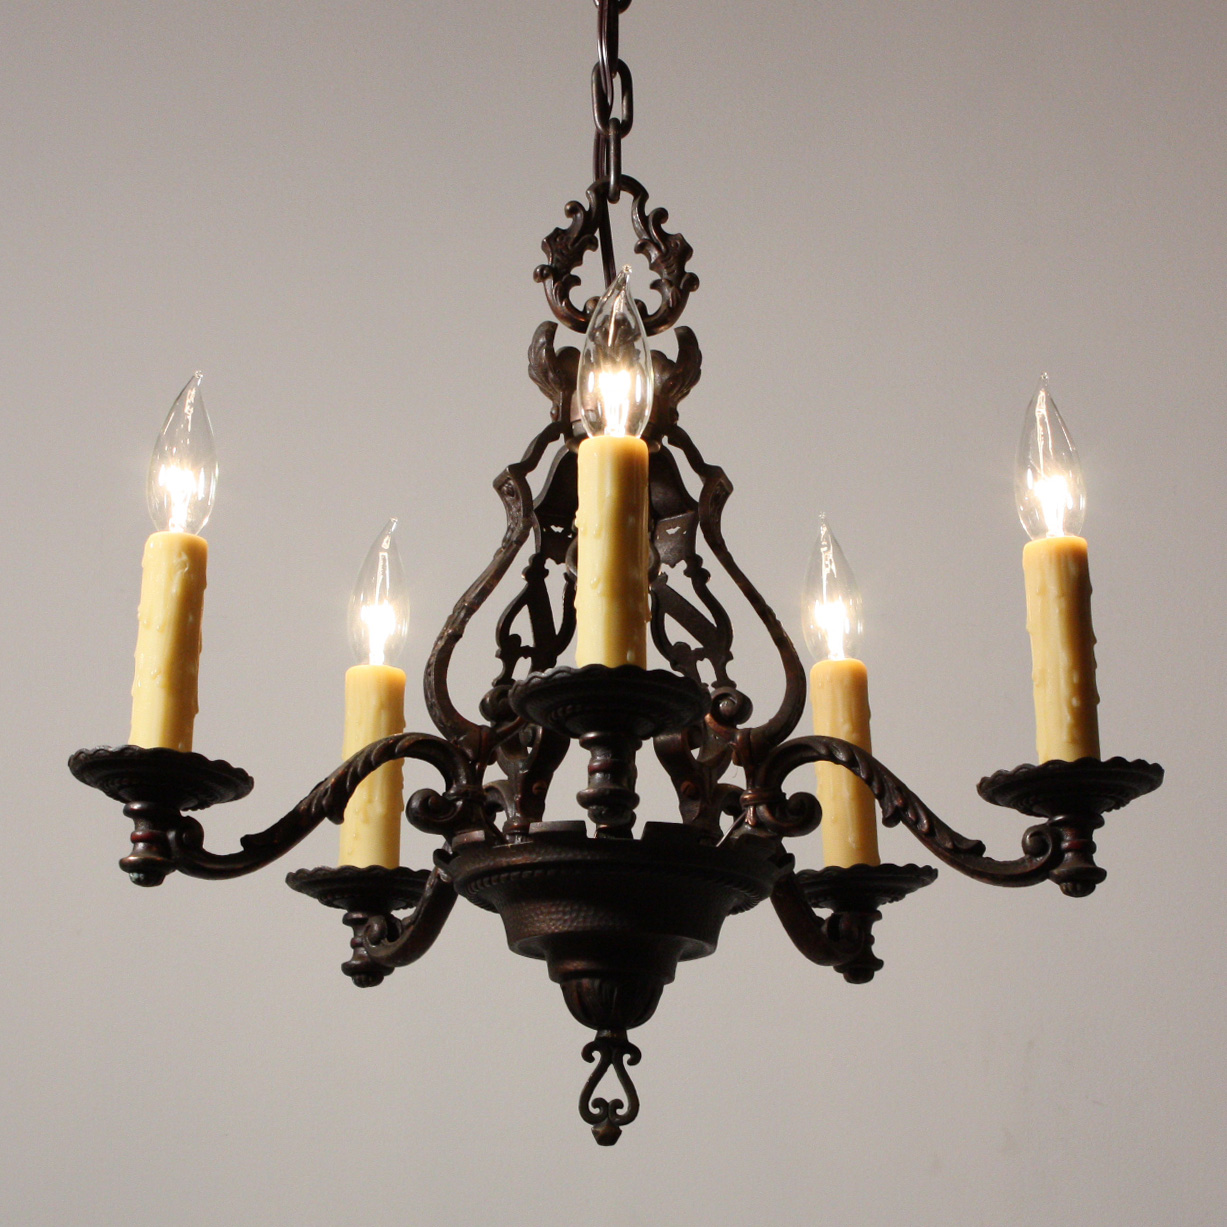 Magnificent antique figural five light chandelier cast iron early 1900s nc1513 for sale - Lights and chandeliers ...